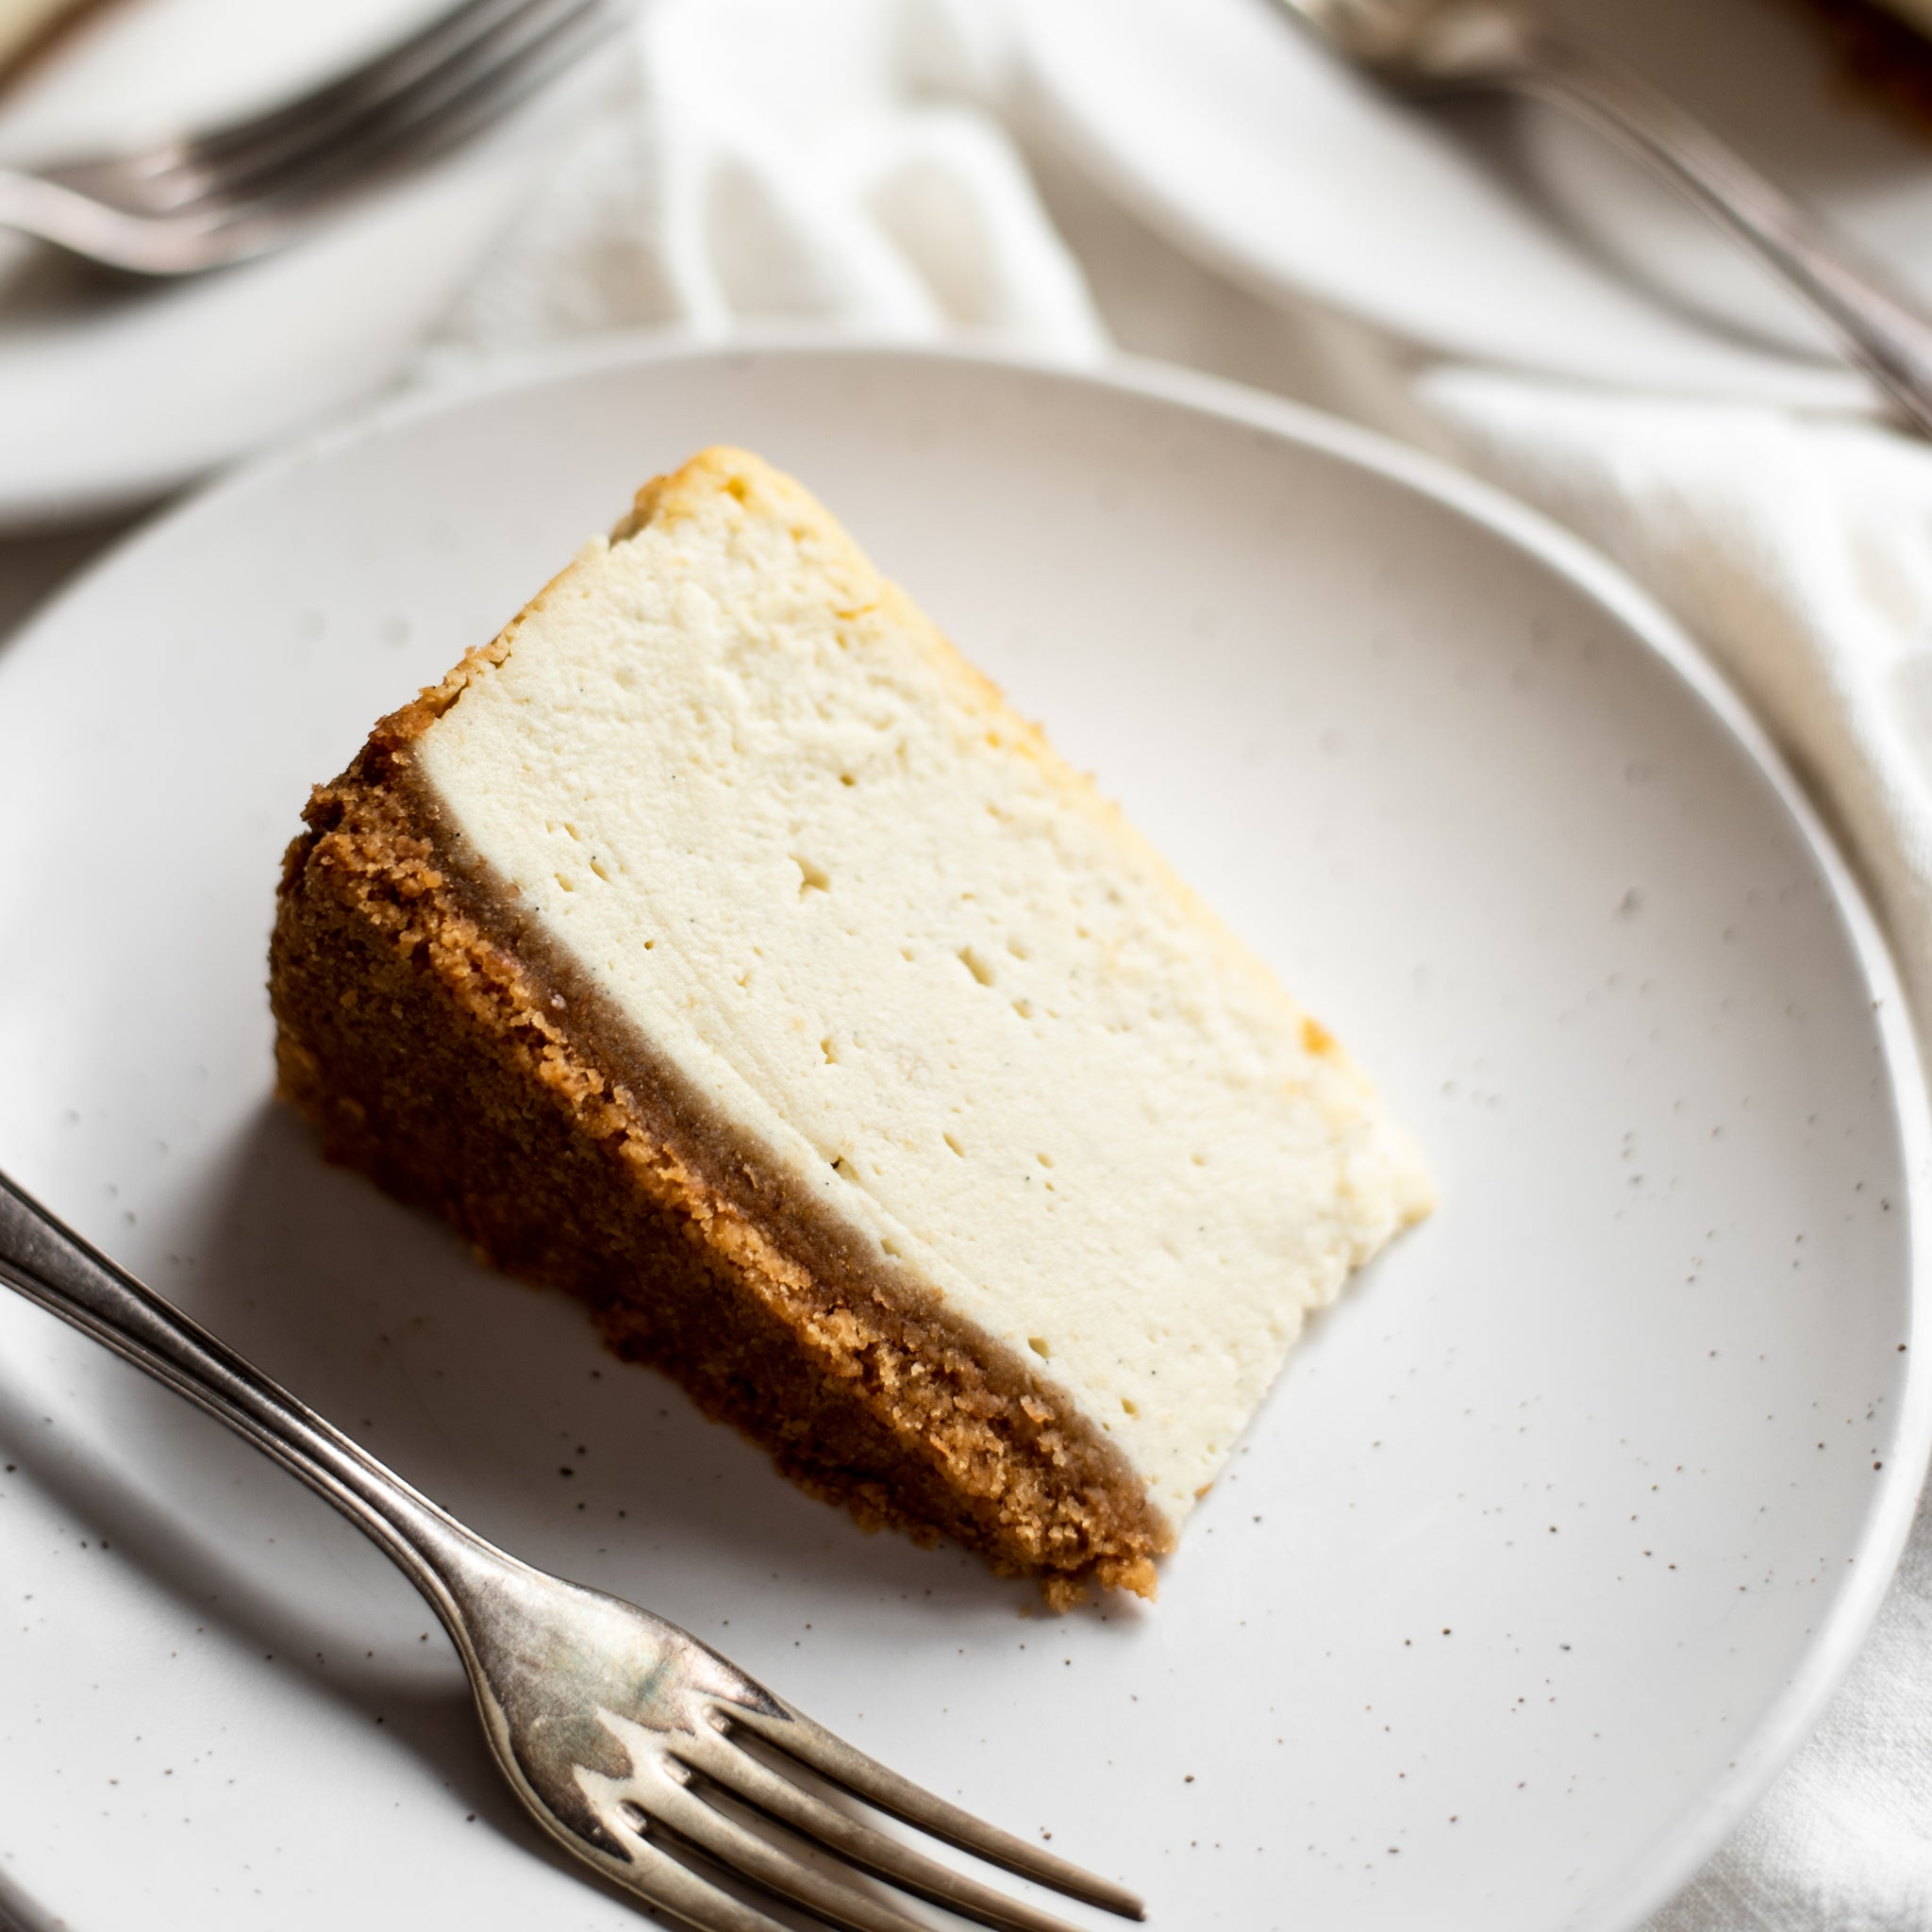 Baked-Cheesecake-SQUARE-1.jpg